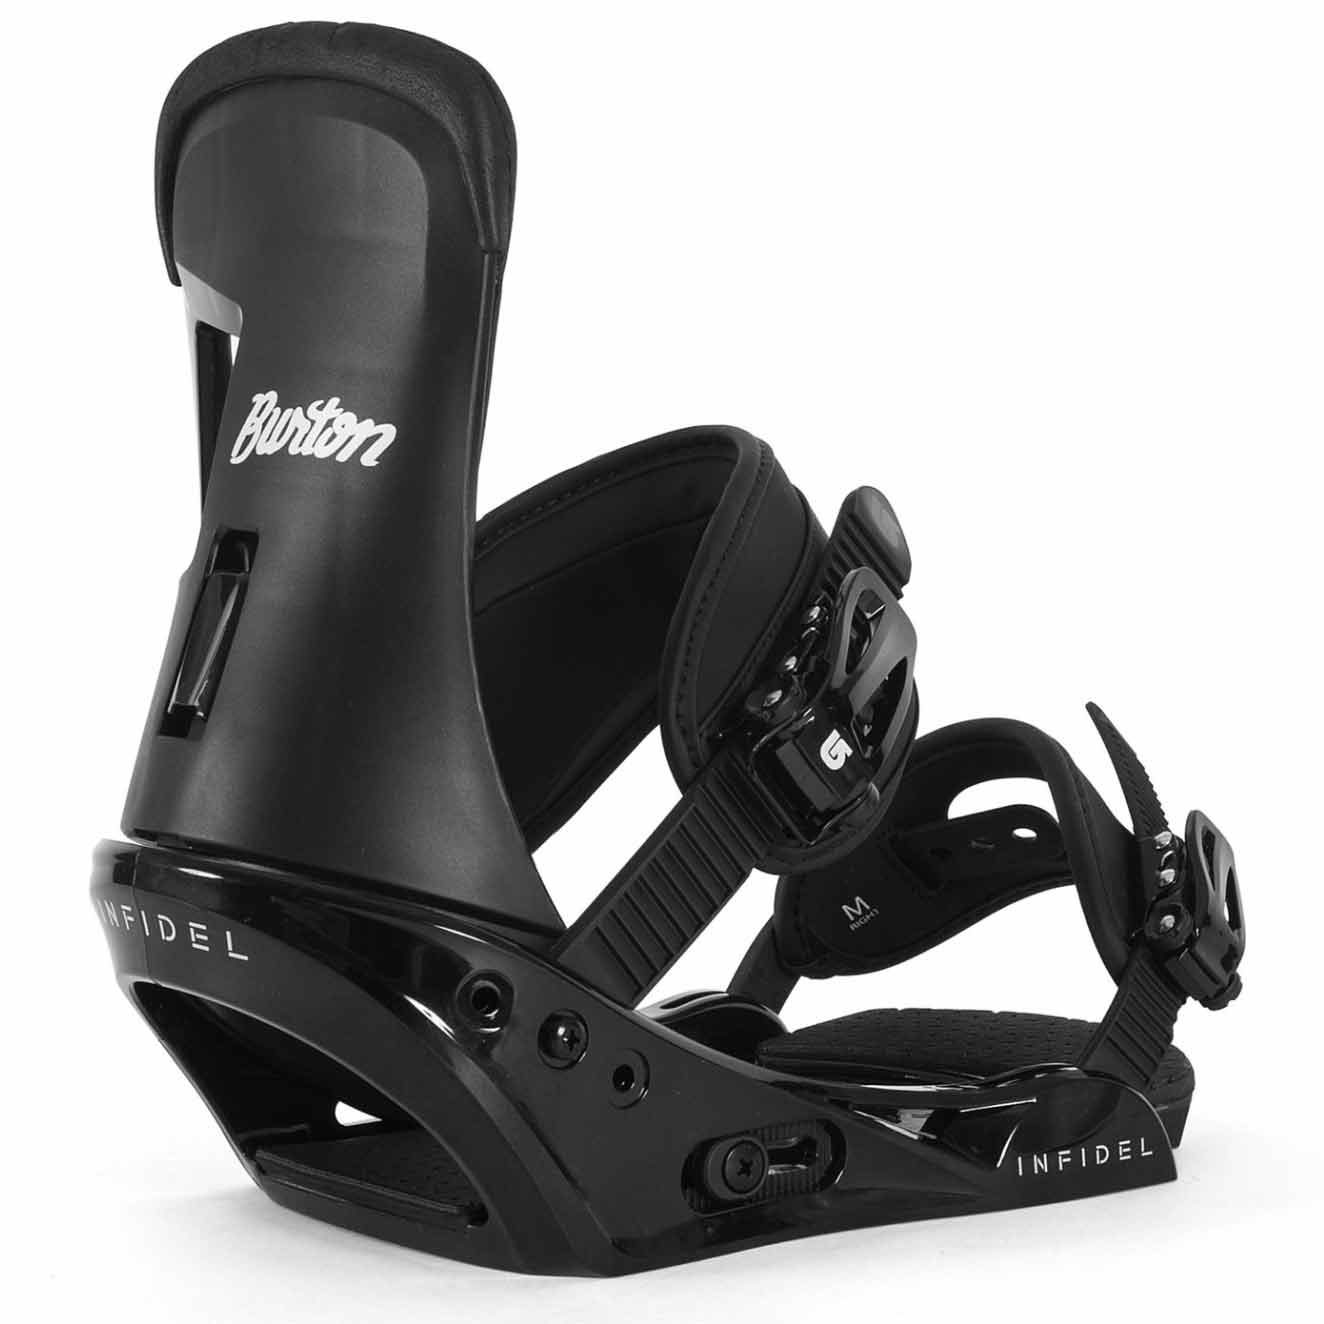 Burton Ripcord Snowboard With Infidel Bindings Package